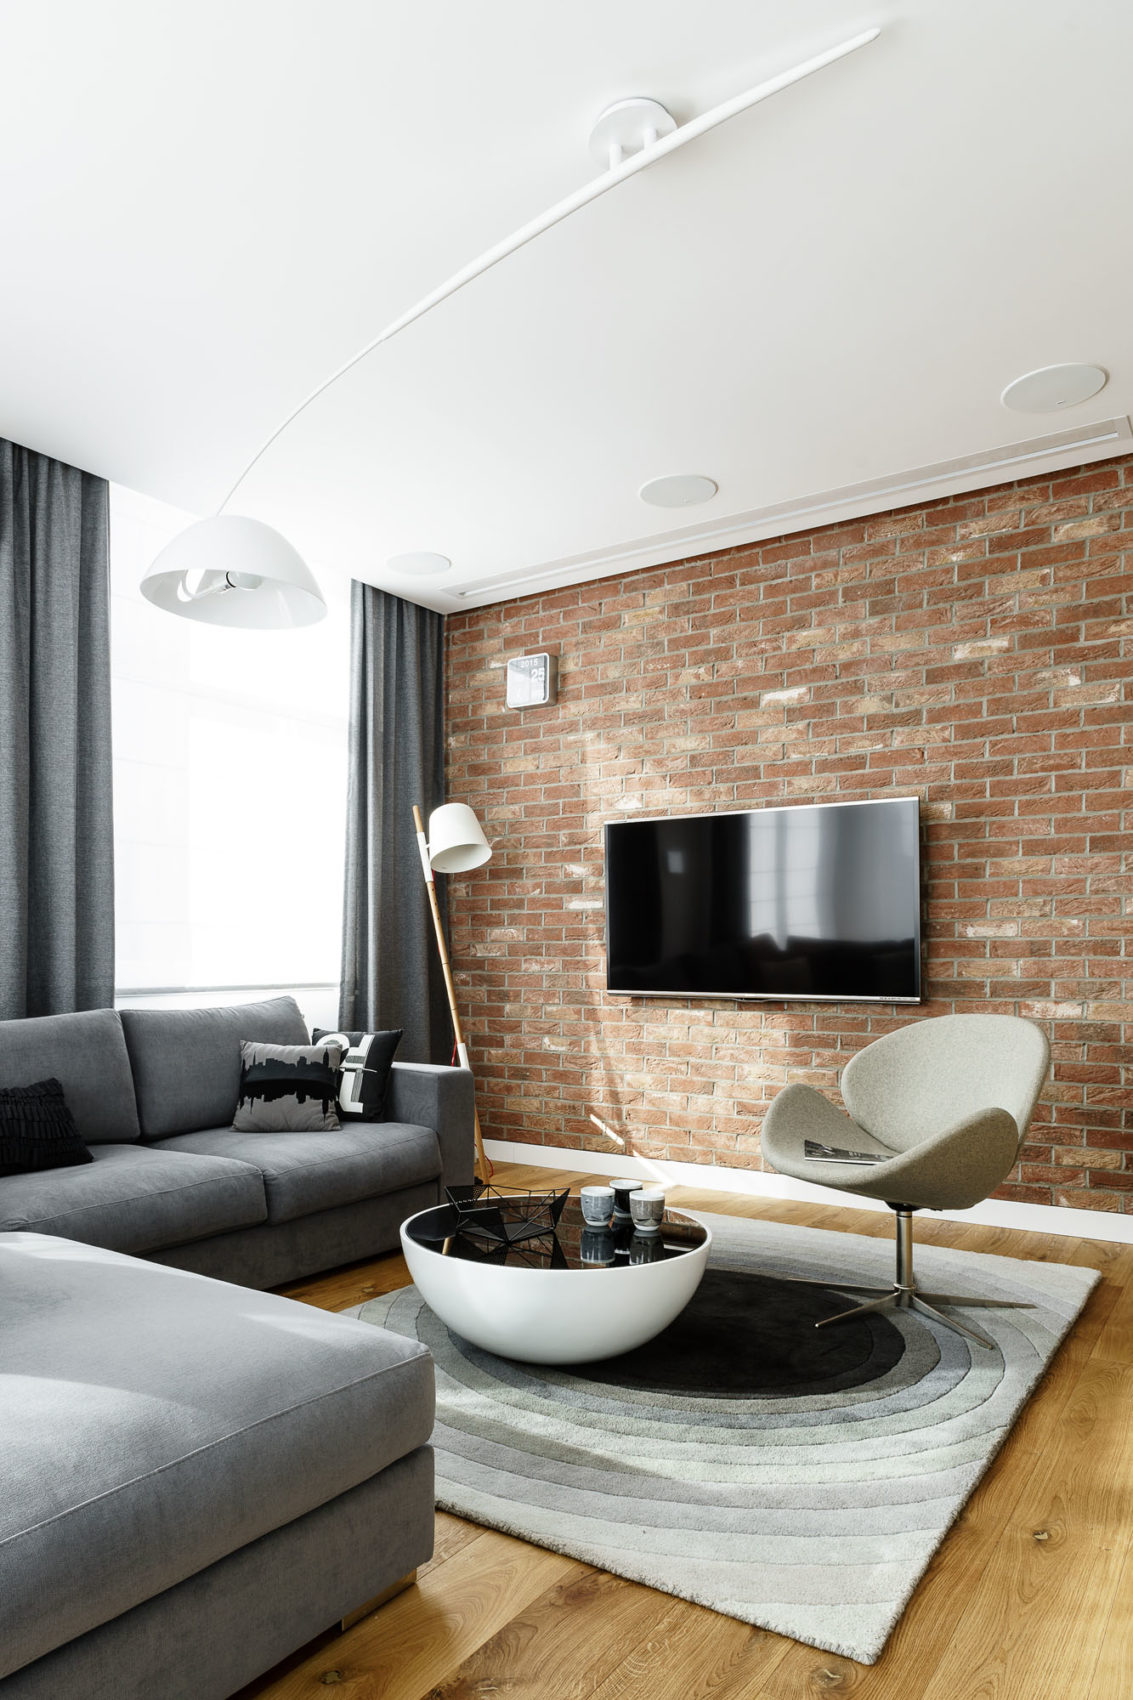 Top Floor Apartment in Gdynia by Dragon Art (18)